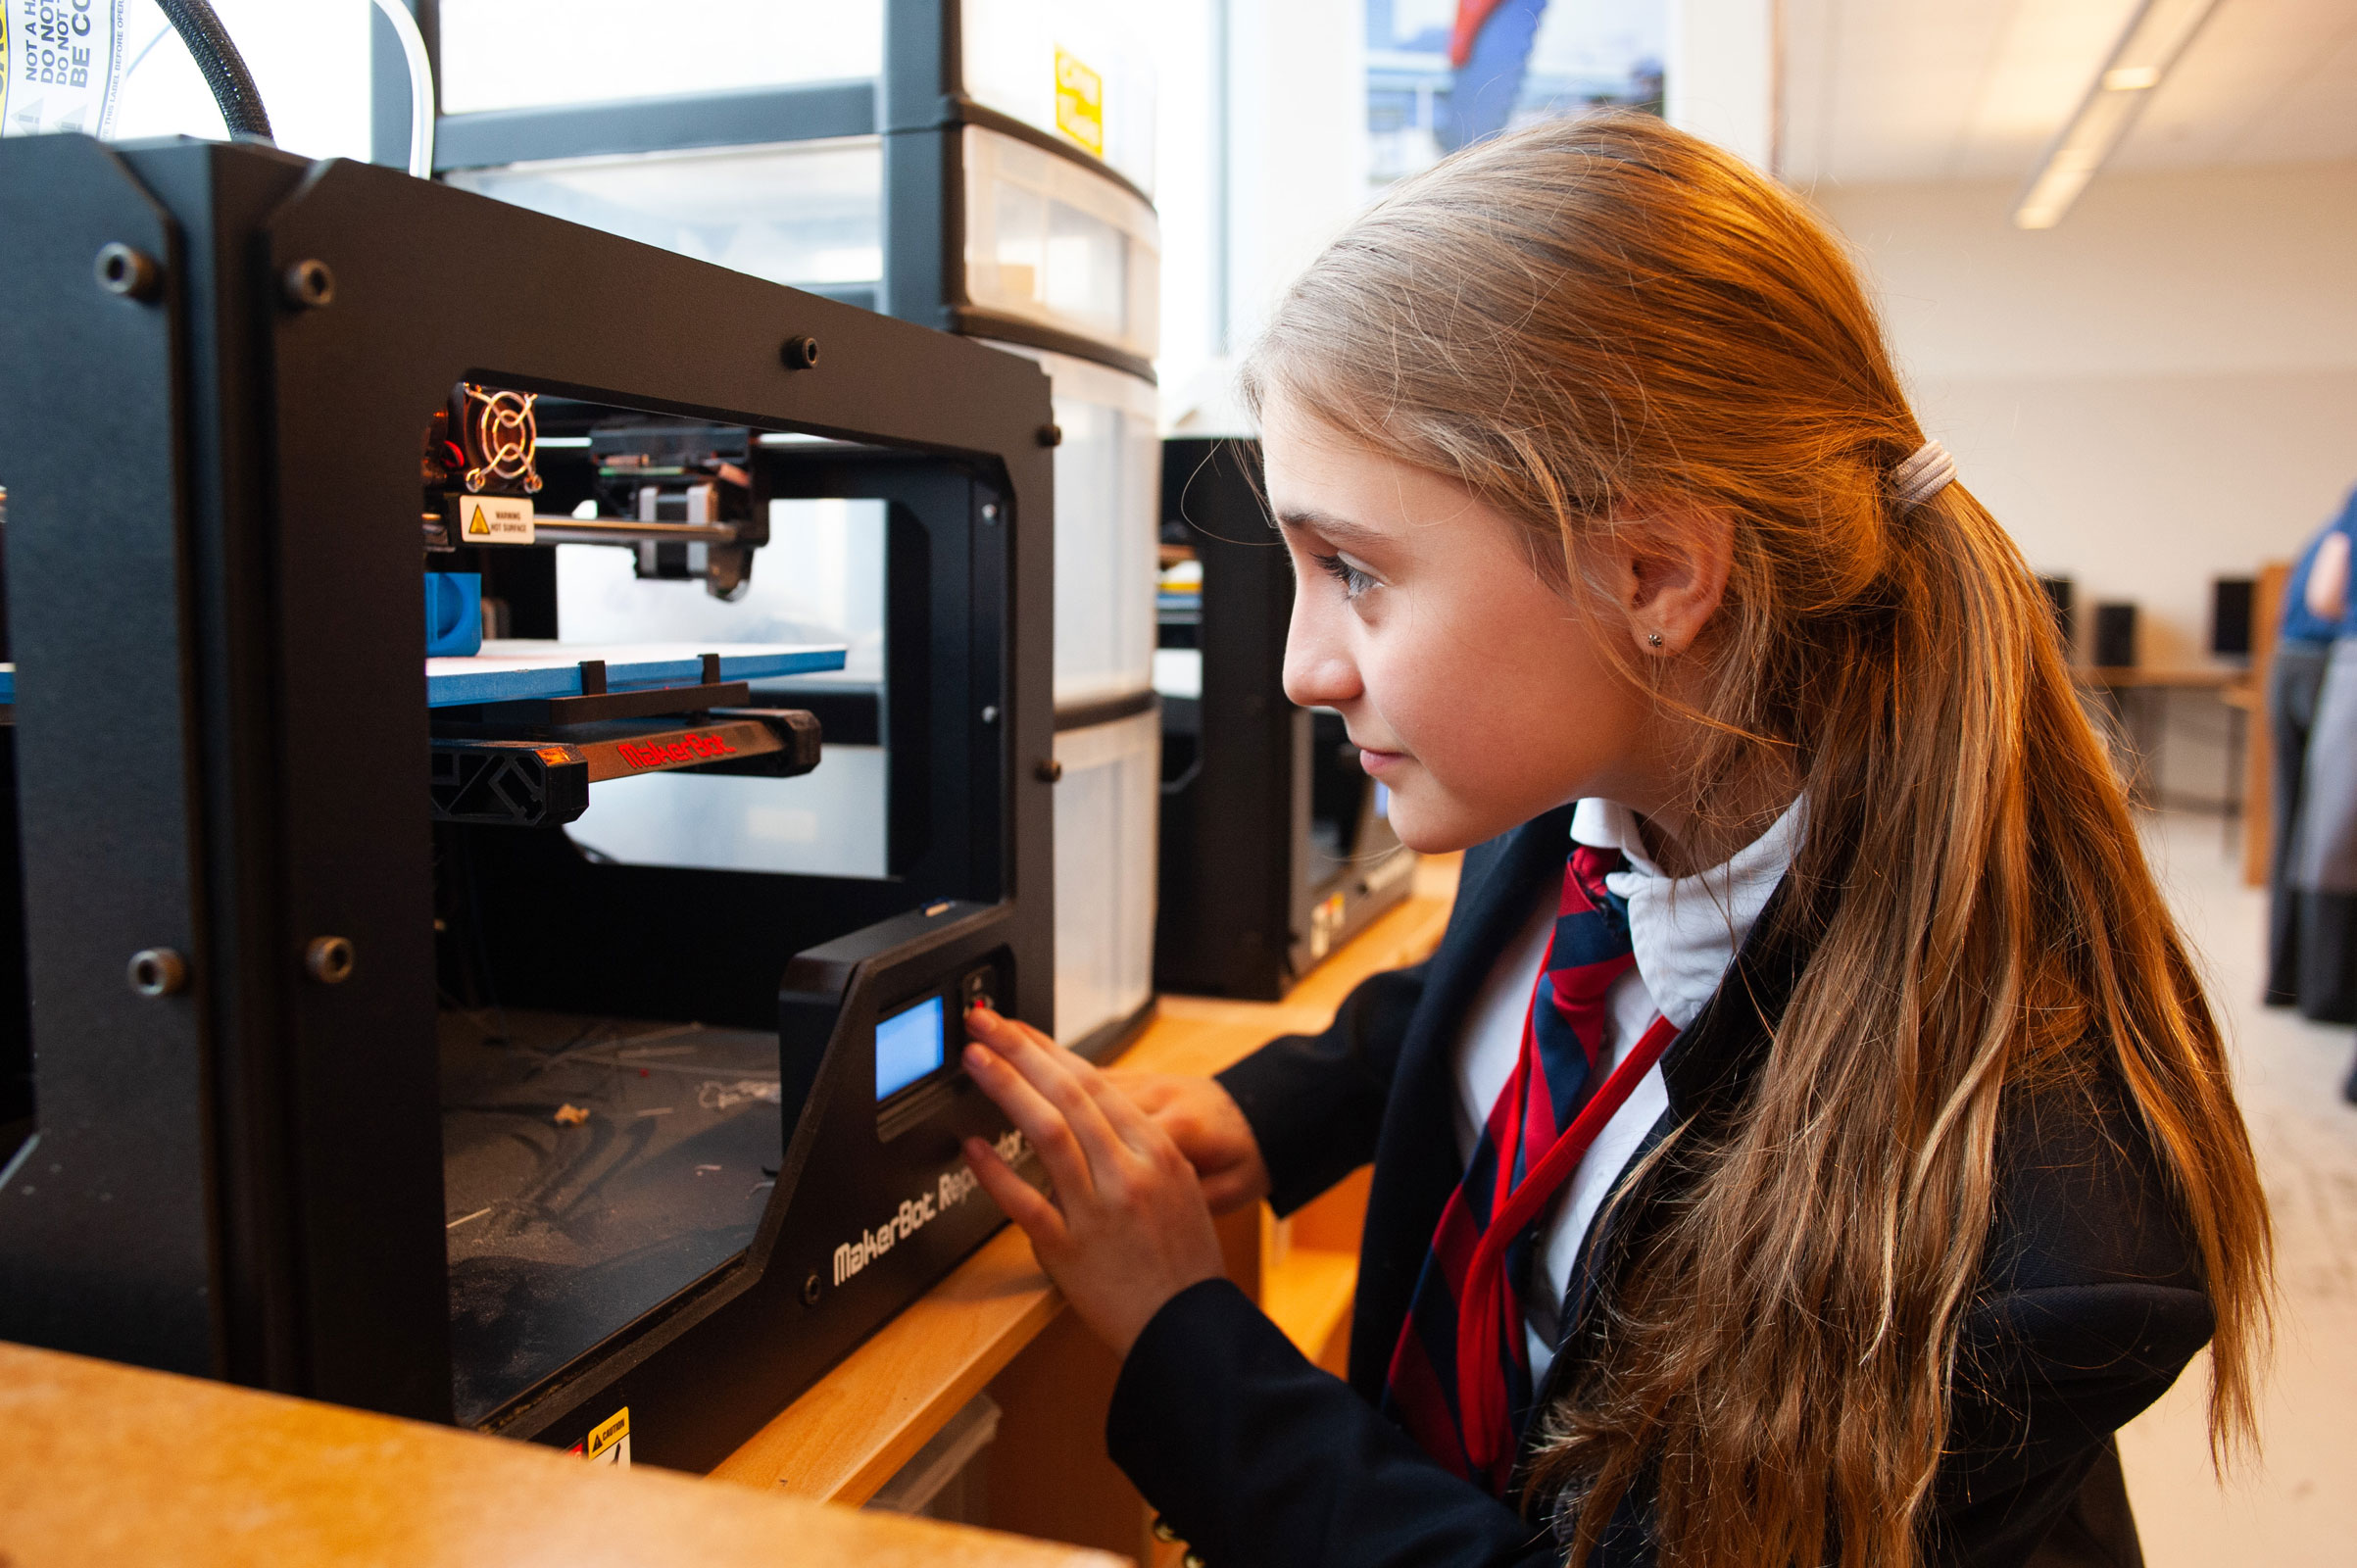 British-School-Editorial-Style-Photography-Young-Girl-Watches-3d-Printer-MakerBot